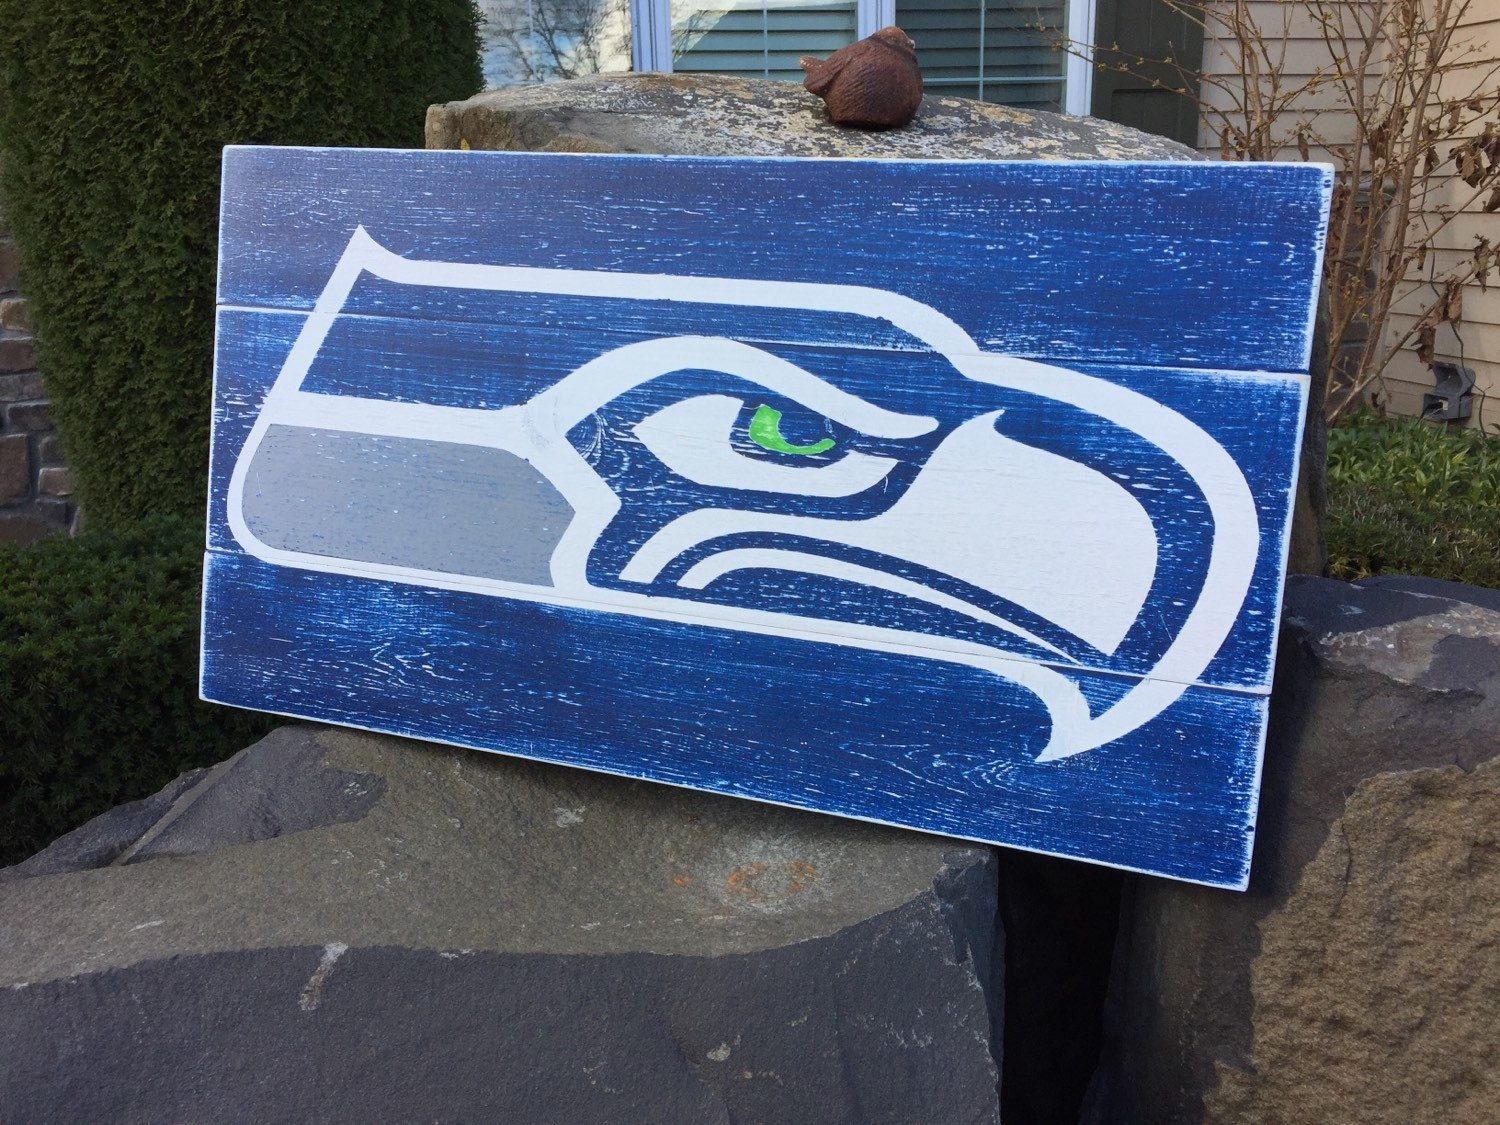 Man Cave Football Signs : Seattle seahawks large hand painted wood sign rustic man cave